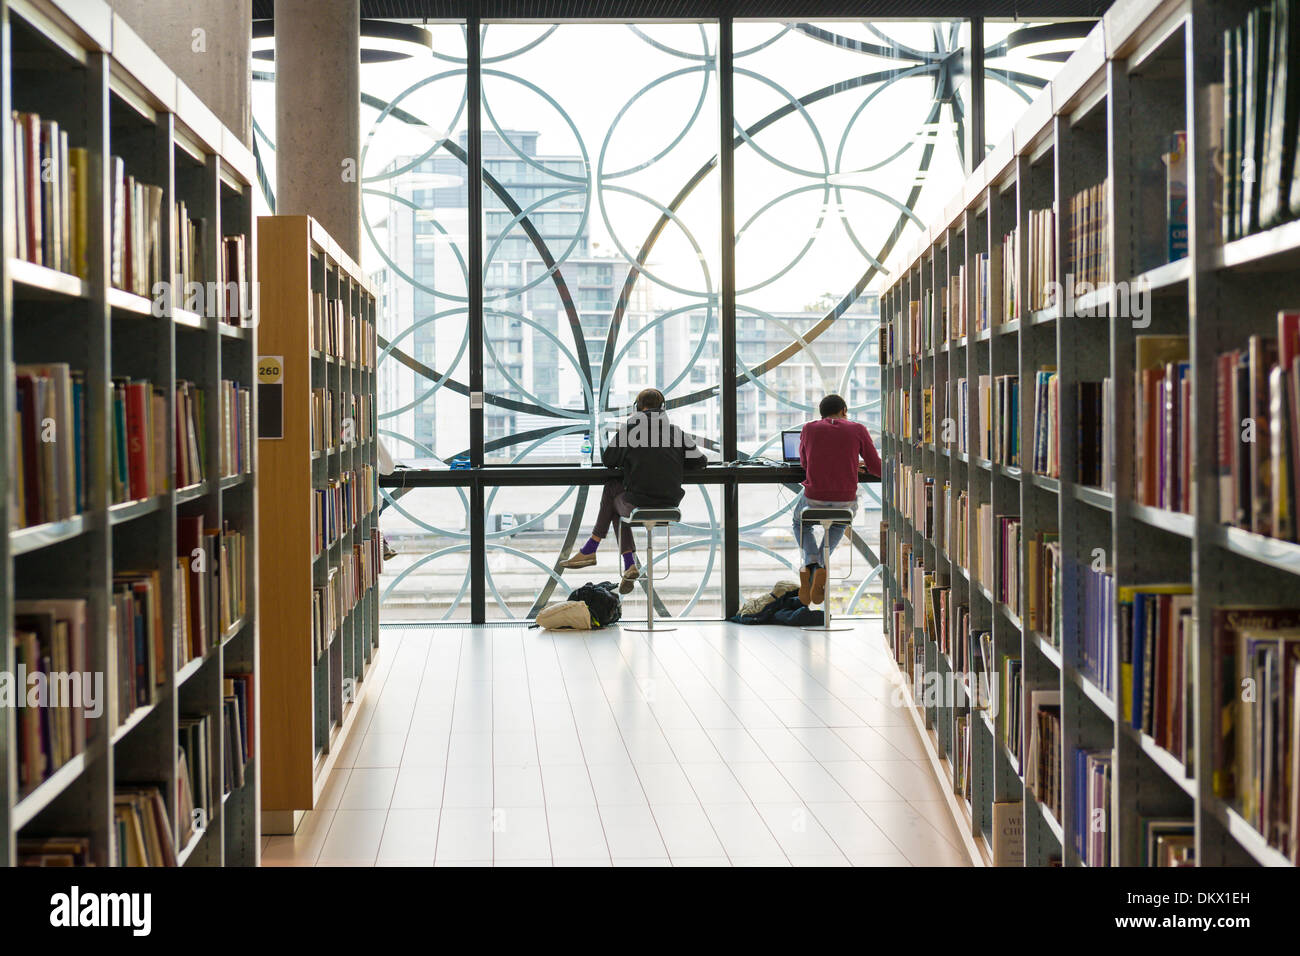 Students working at the new Library of Birmingham, Birmingham, England - Stock Image